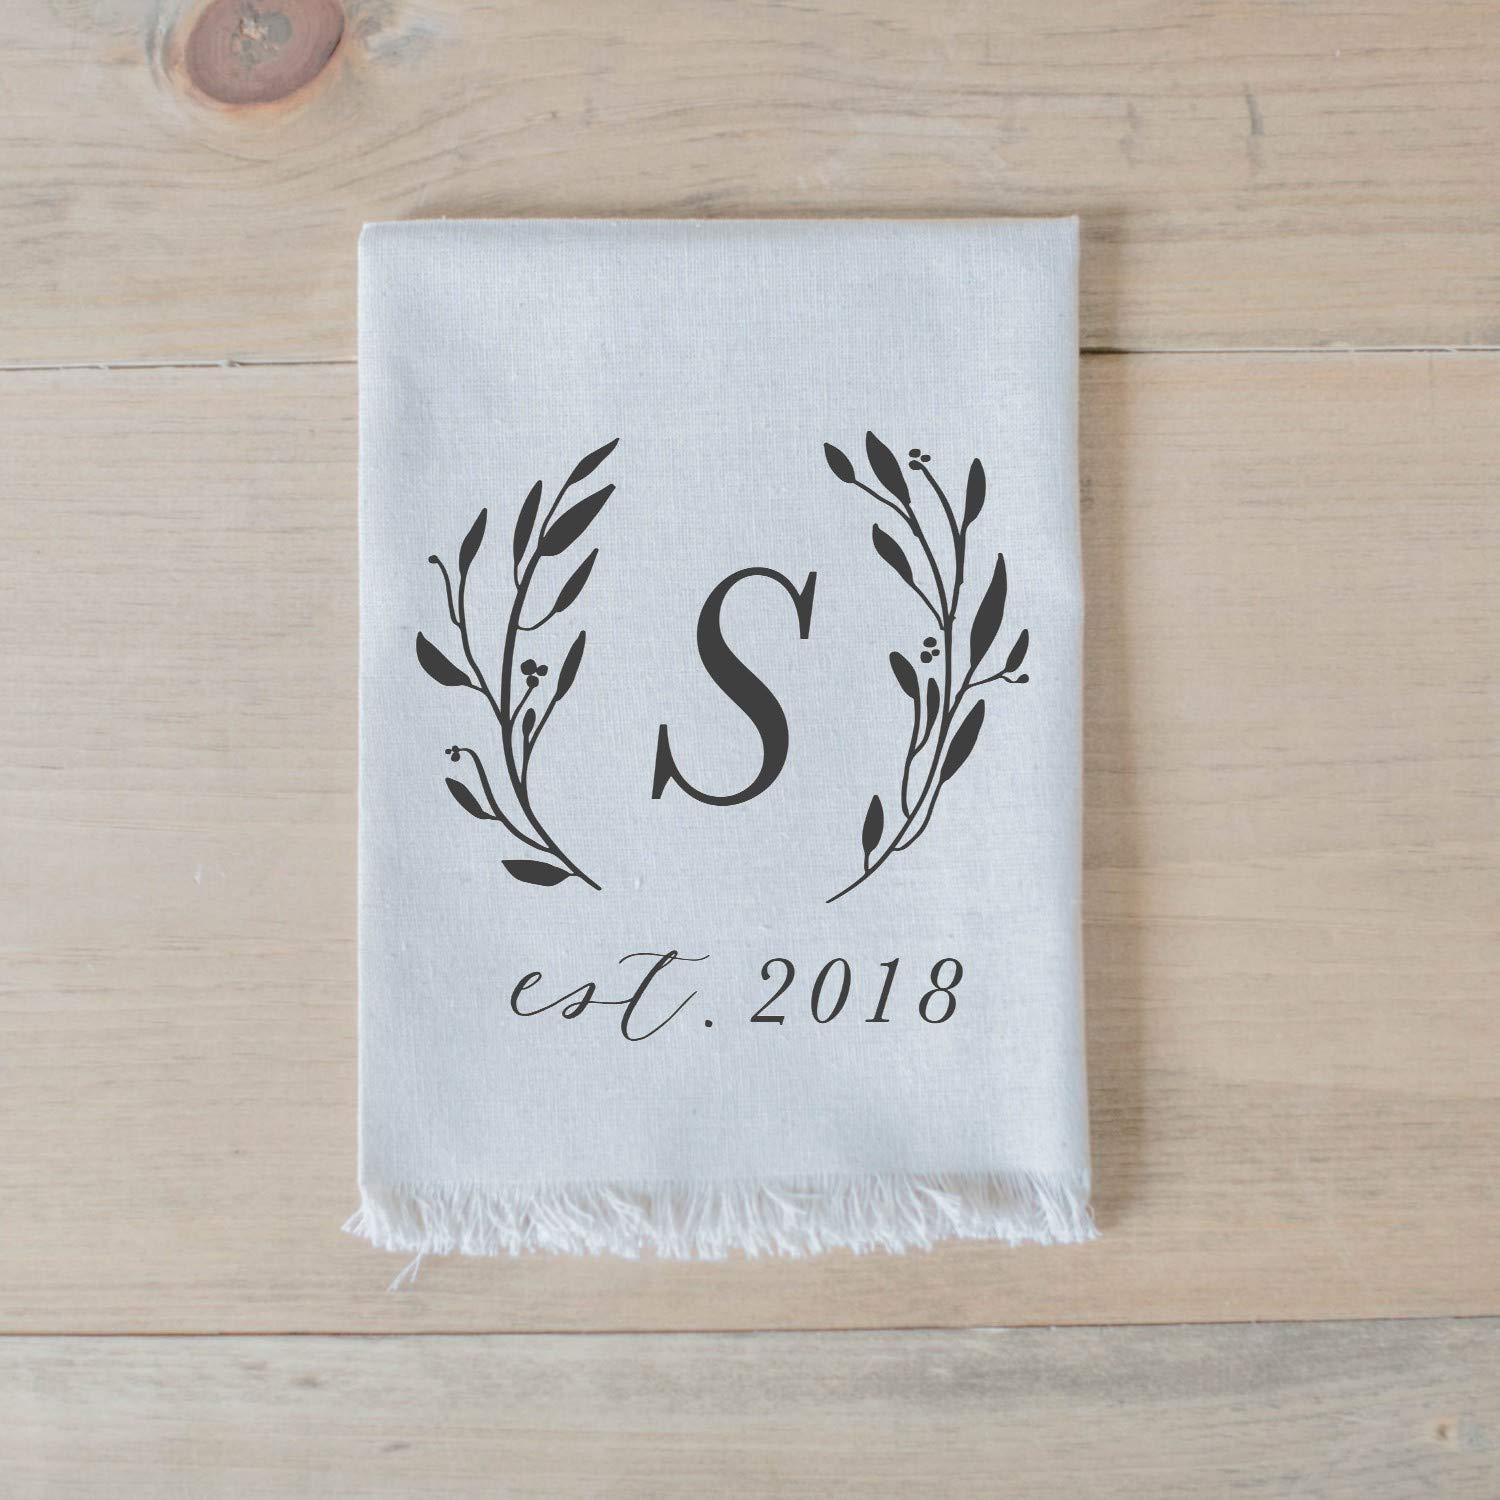 home decor place setting table setting home decor dinner party tableware housewarming gift Personalized Napkin Set Initial with Laurels Handmade in the USA